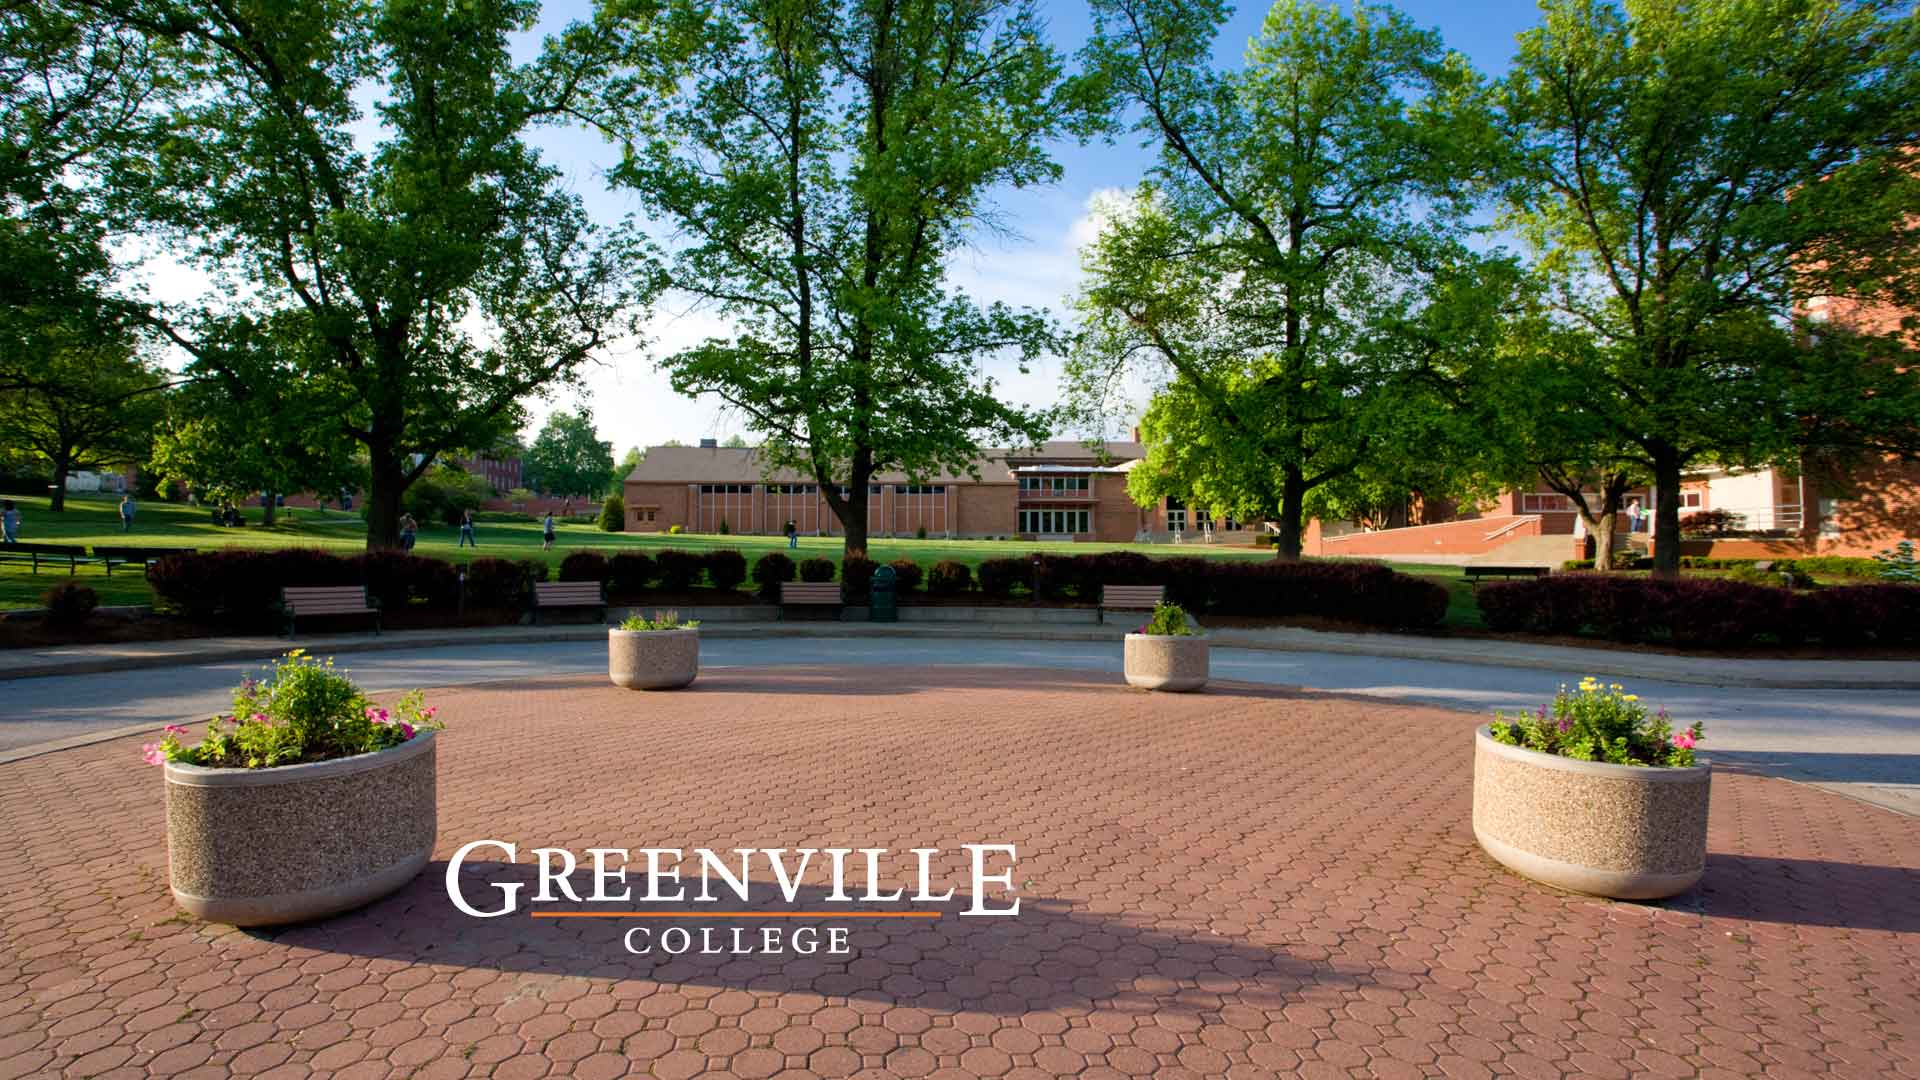 Desktop Wallpapers   Greenville College Christian College in 1920x1080